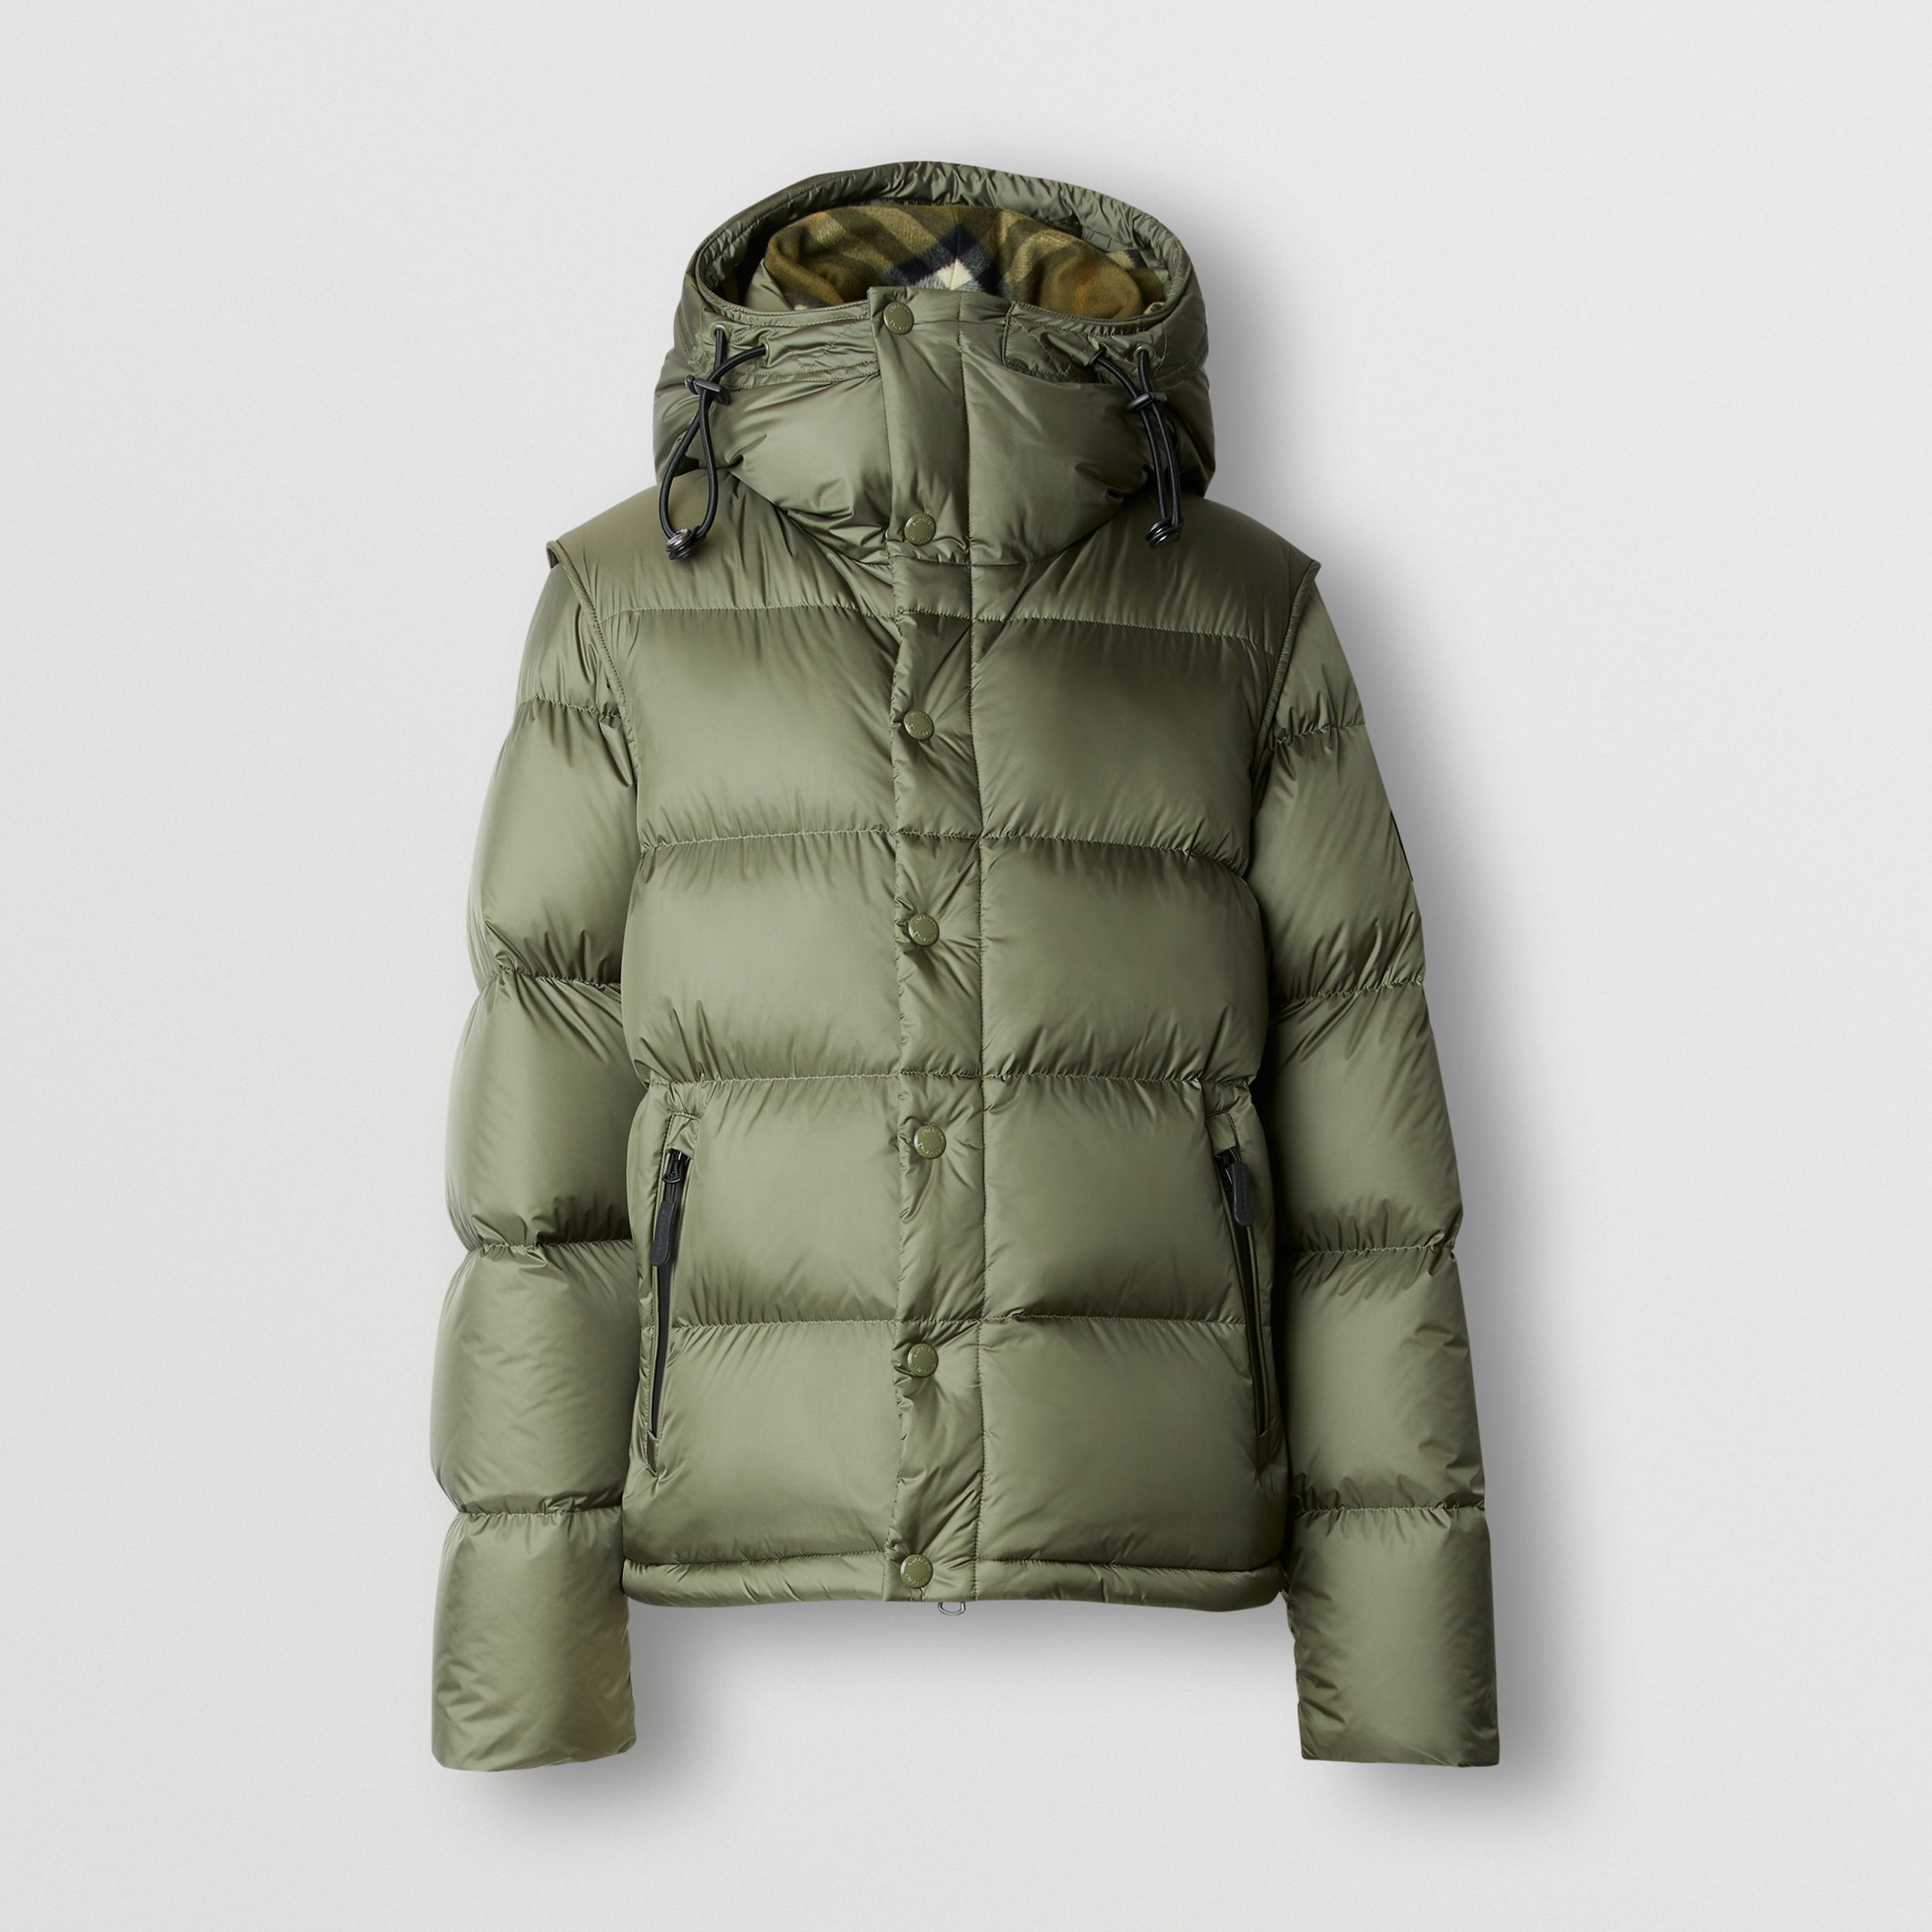 Detachable Sleeve Hooded Puffer Jacket in Olive - Men | Burberry United States - 4